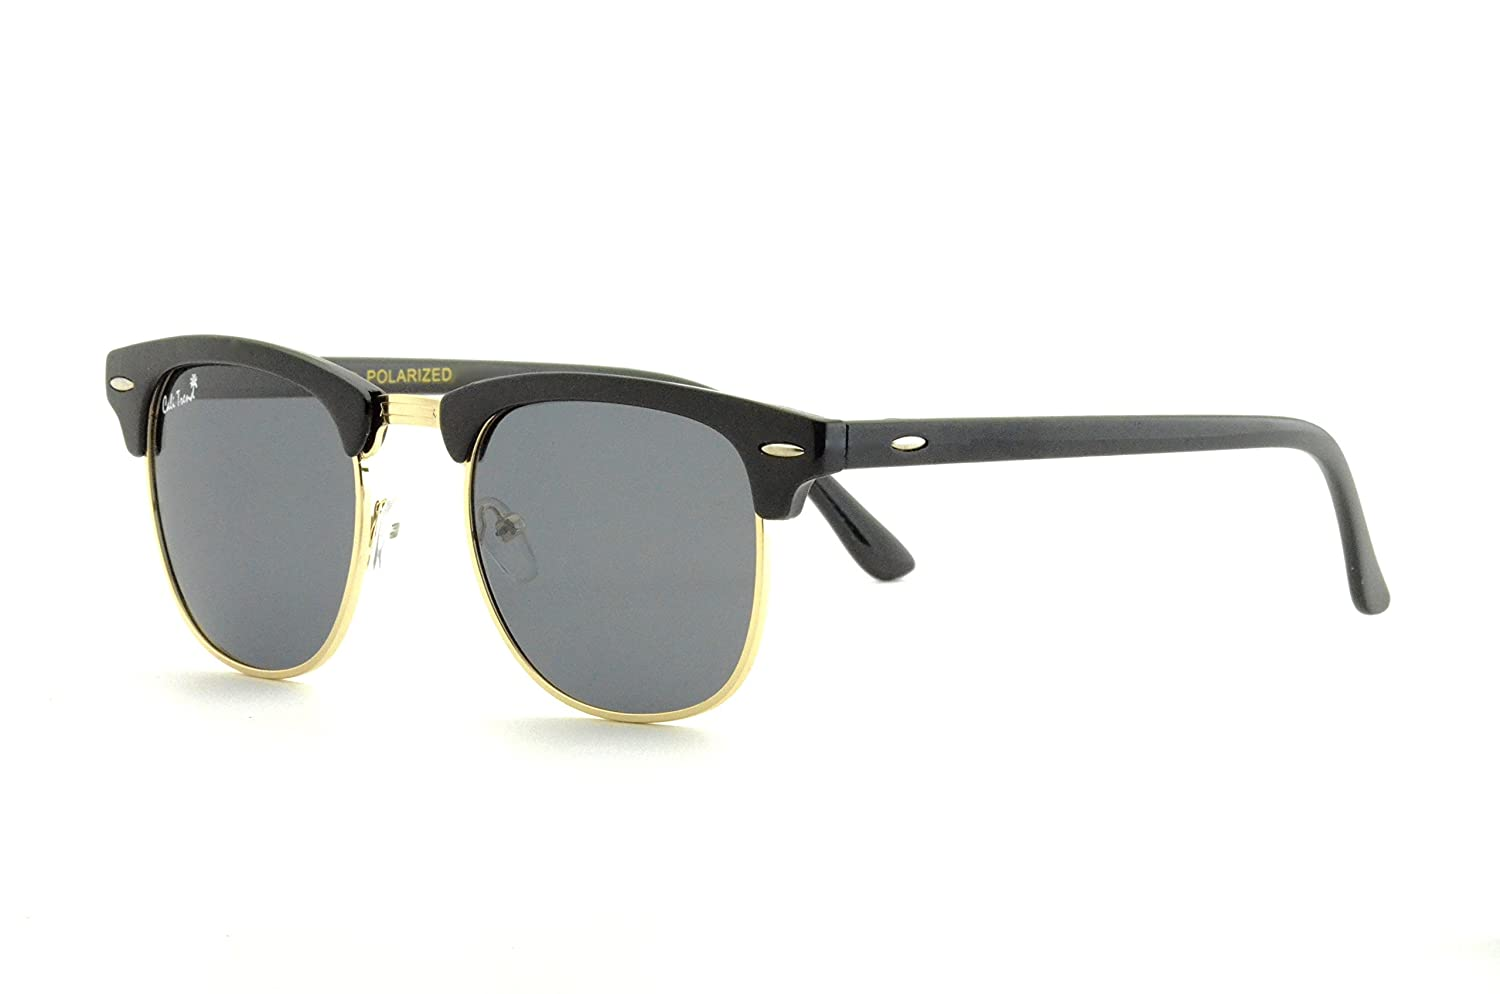 a081024d89e Amazon.com  Polarized Half Frame Sunglasses - Clubmaster Style - Cool